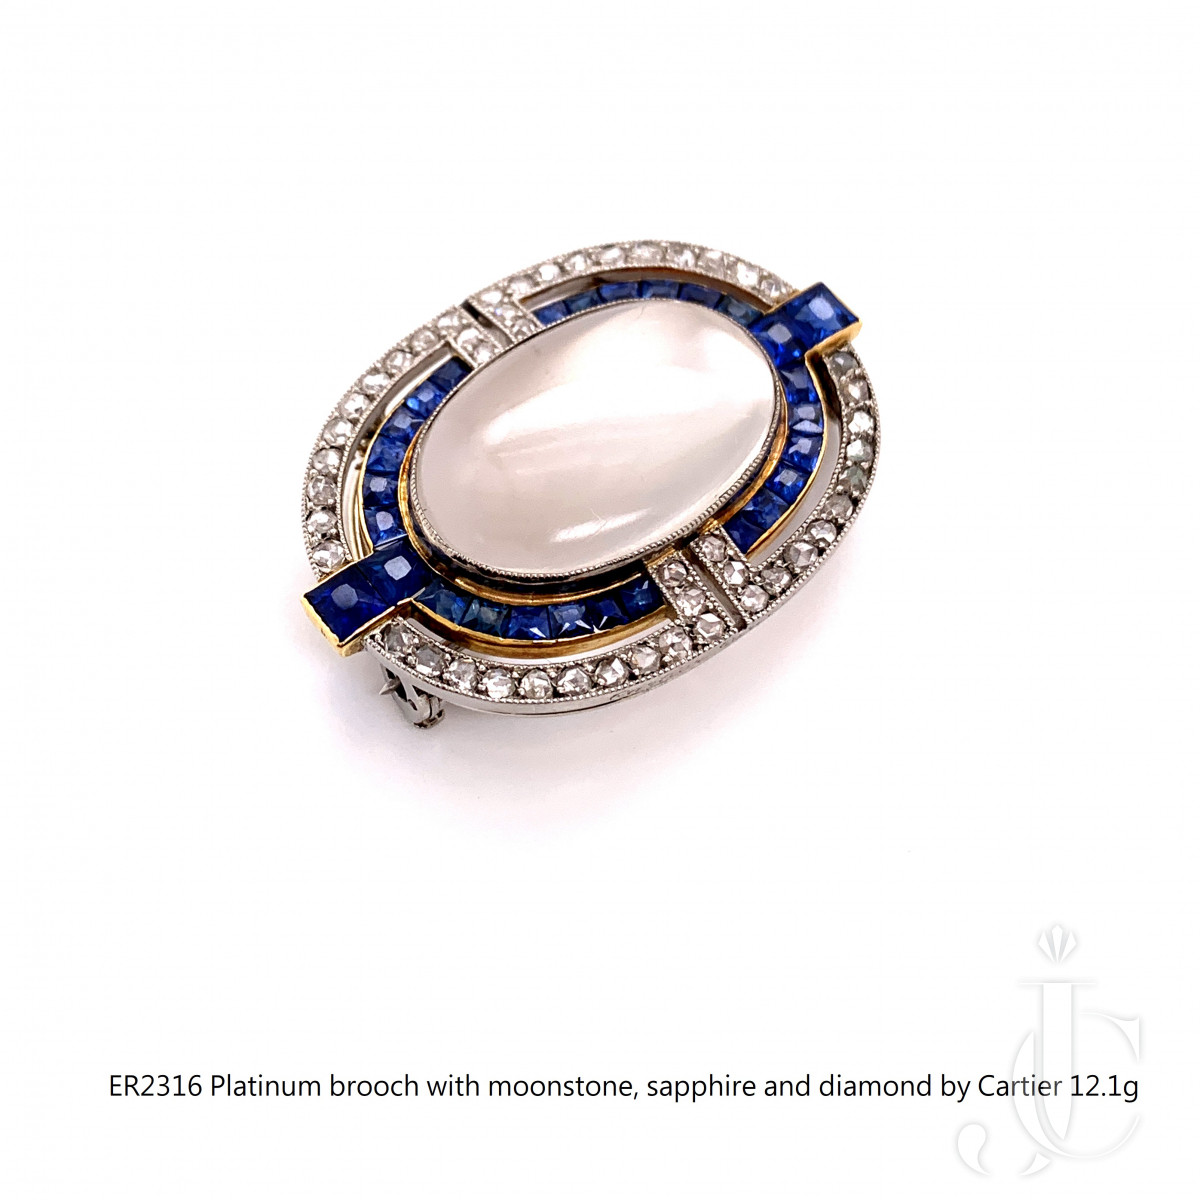 Platinum brooch with moonstone, sapphire and diamond by Cartier